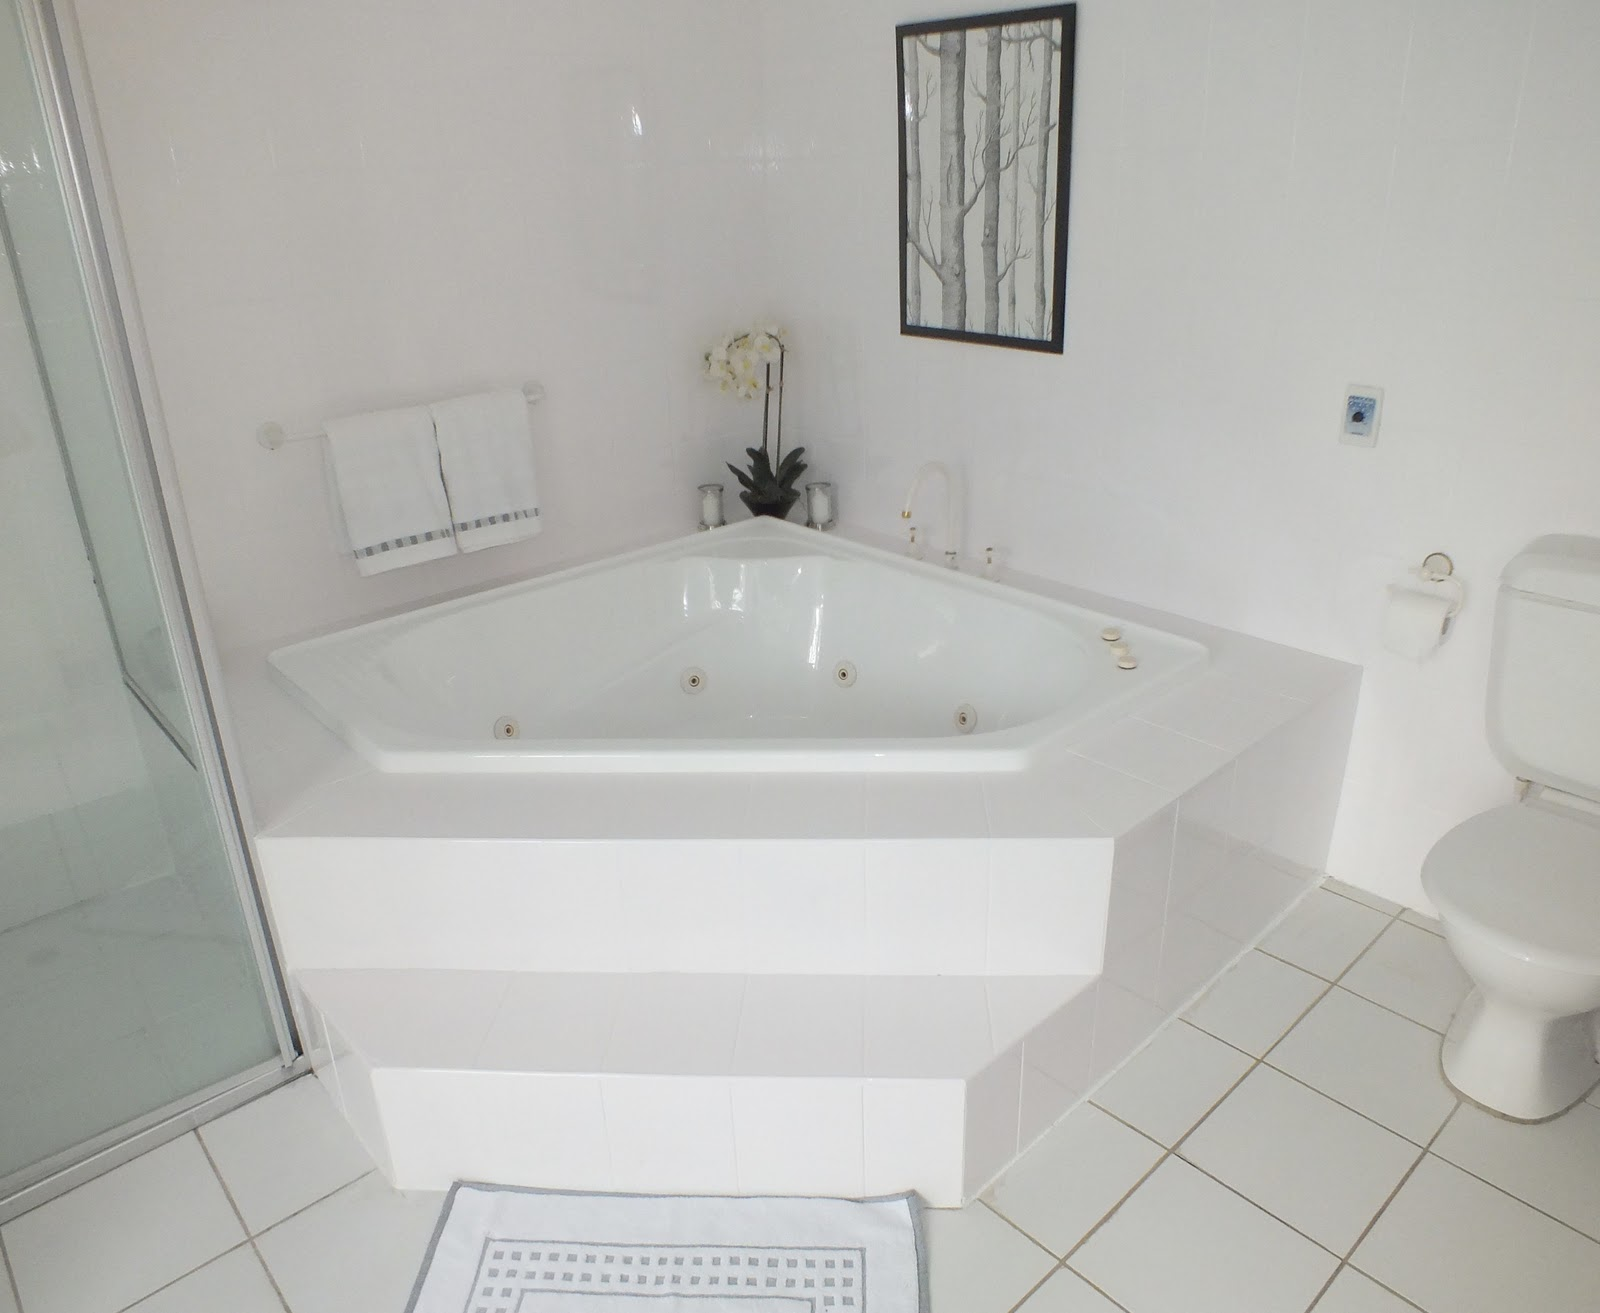 double cast image bellbrook of outside interior slipper tub bathtub clawfoot to mosaic paint iron cdbossington how